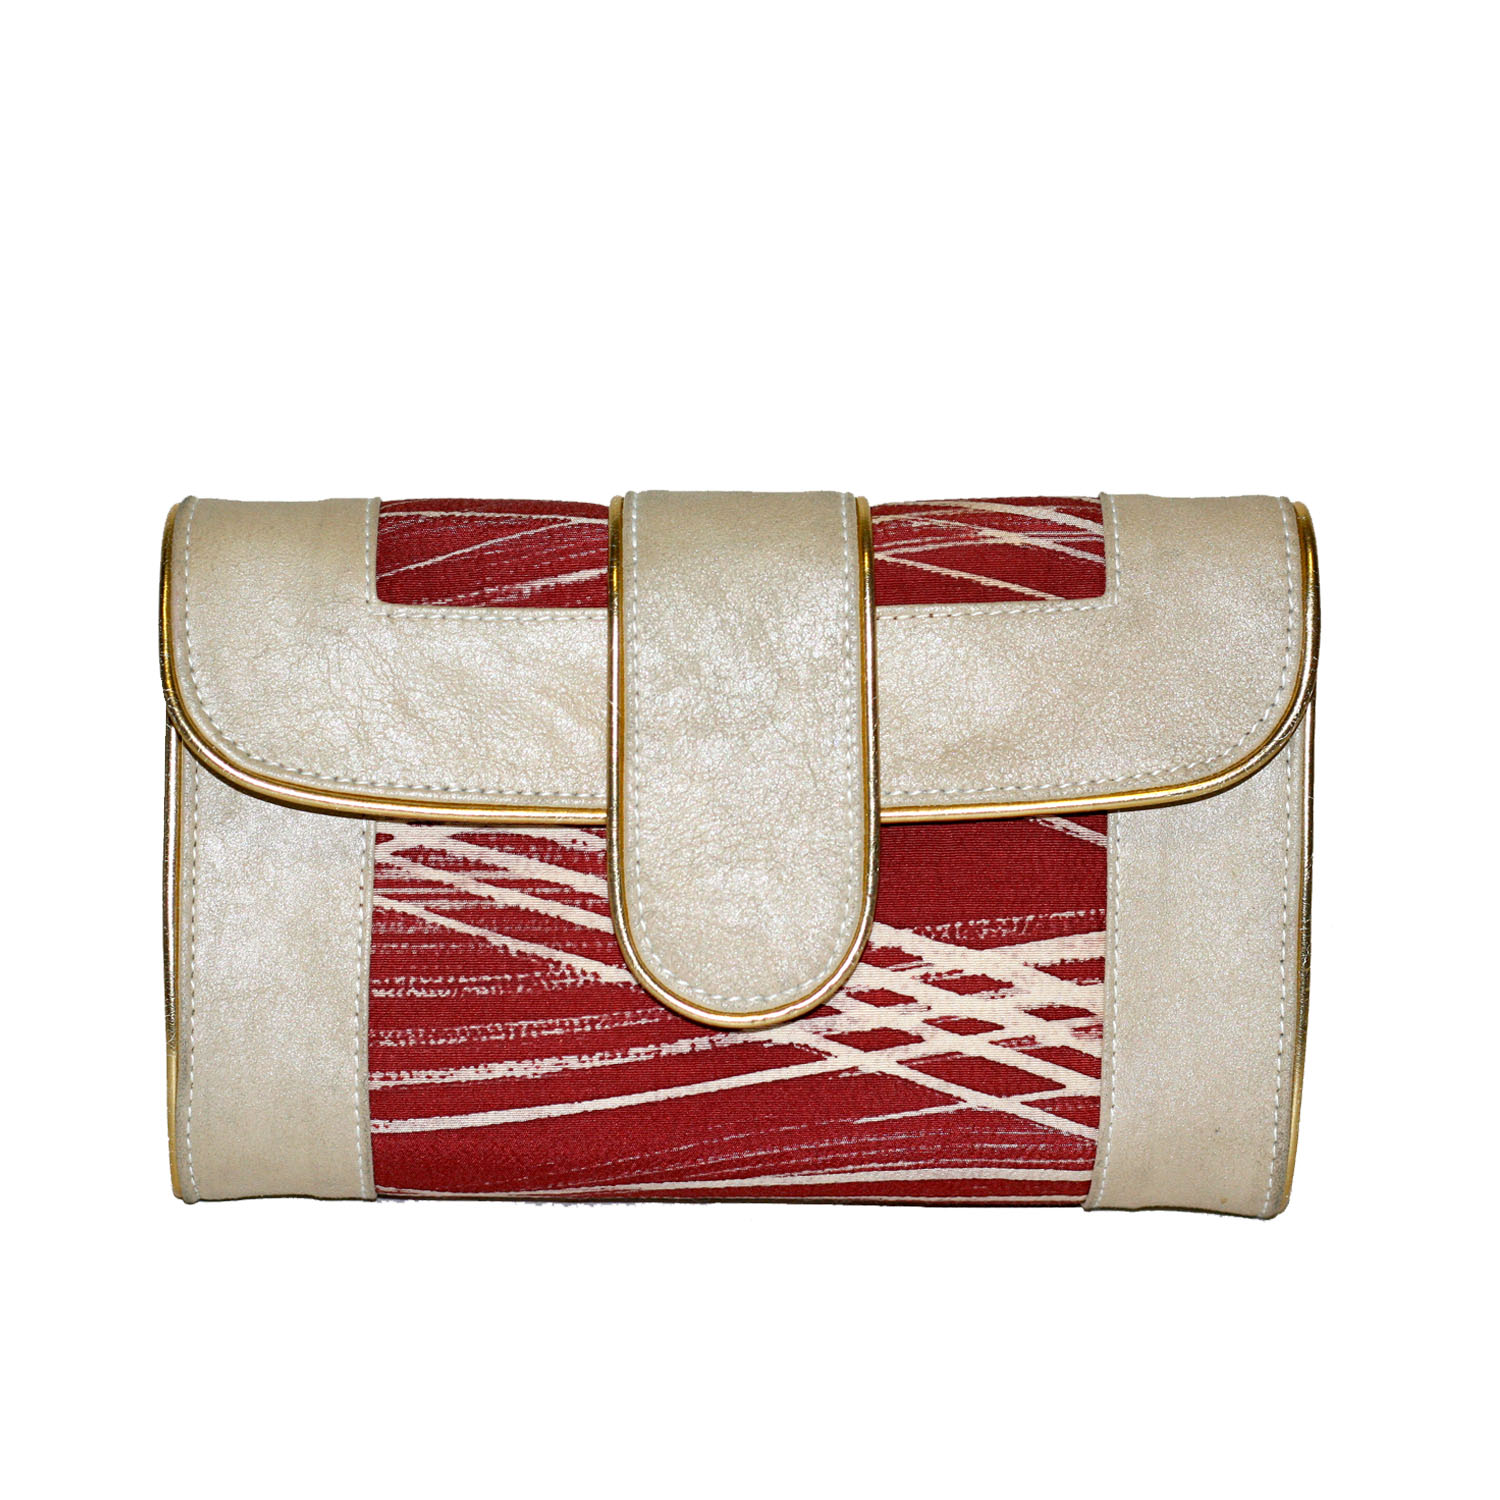 Hermosa paint stroke clutch/crossbody. Off white and burgundy. Made with leather and a vintage kimono. Snap closure. Detachable gold chain strap.